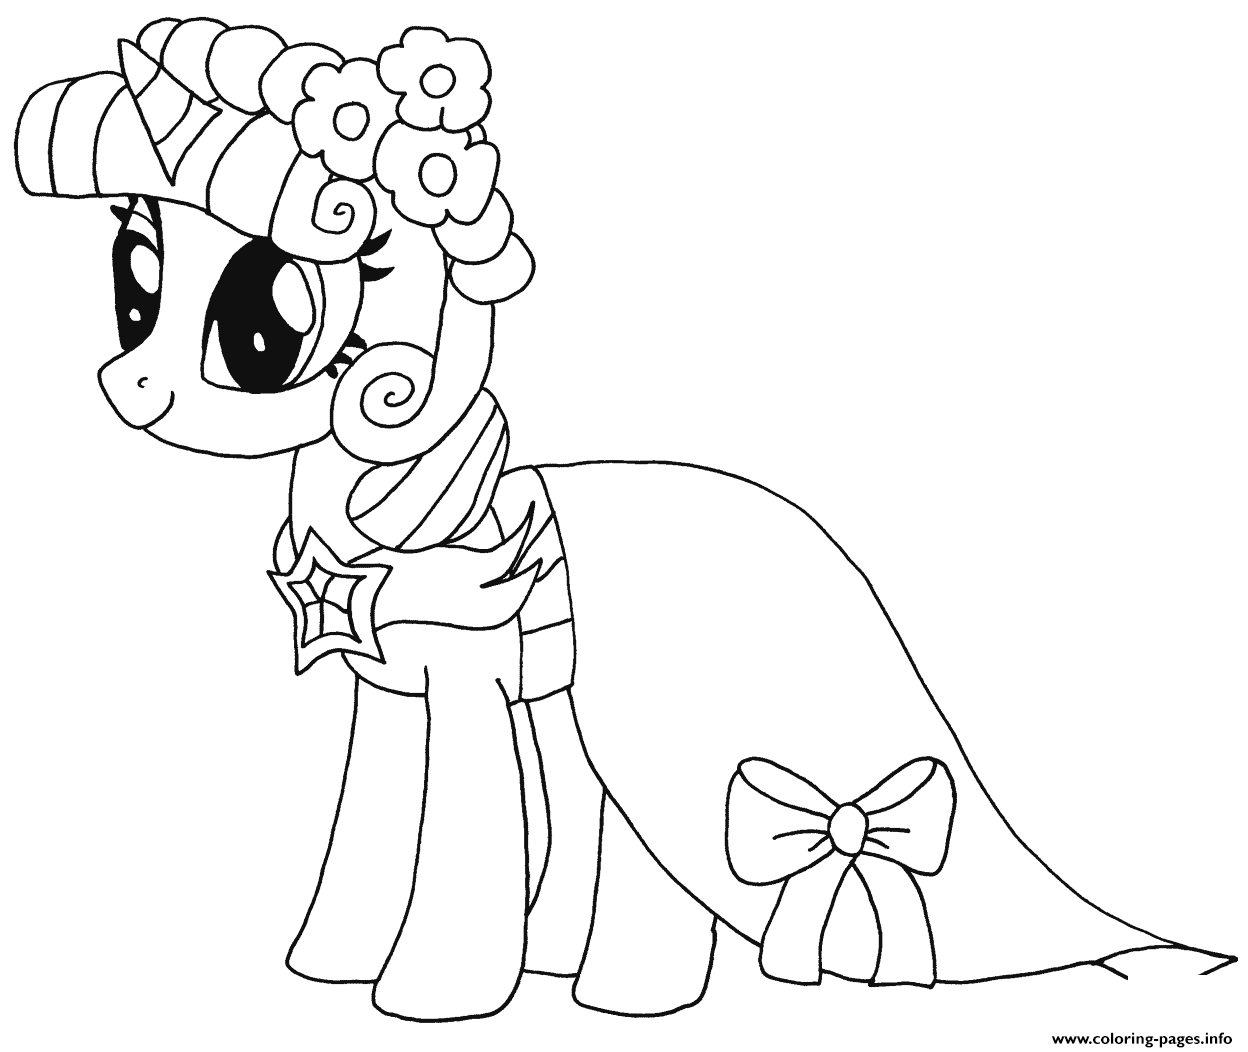 Princess Twilight Sparkle My Little Pony Coloring Pages Print Download 186 Prints